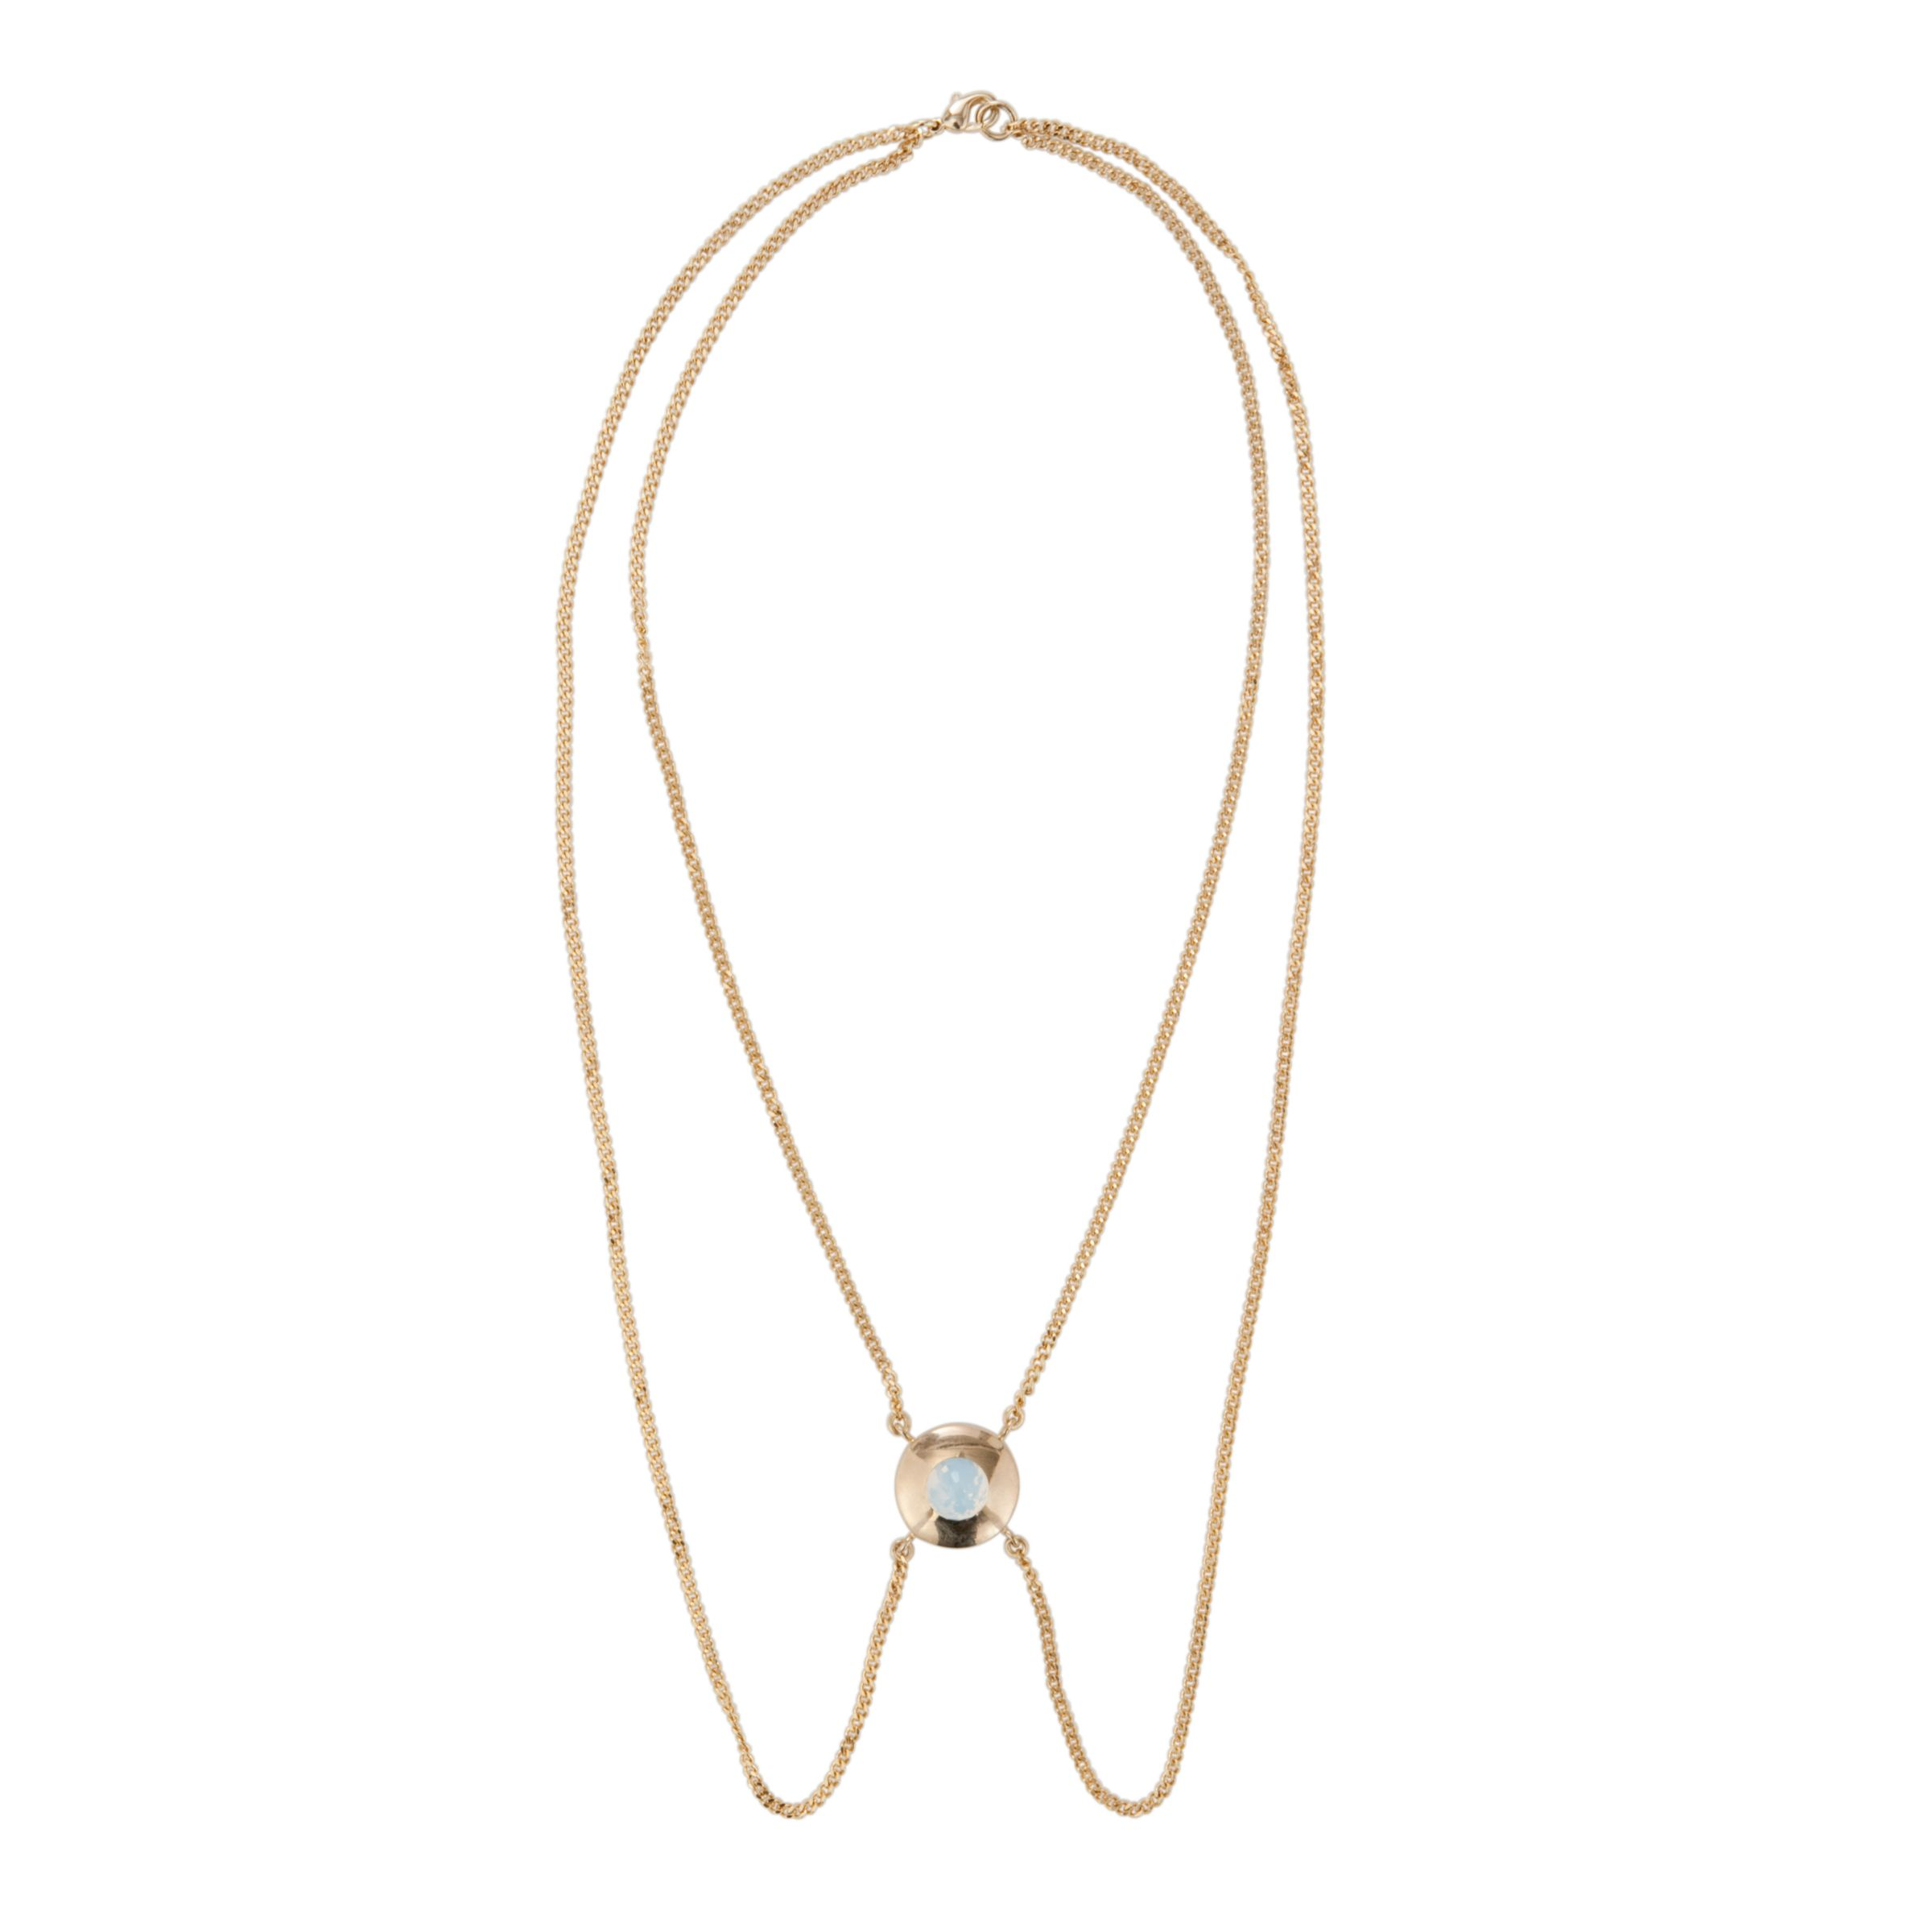 Inara Gold Plated Crystal Pendant Necklace